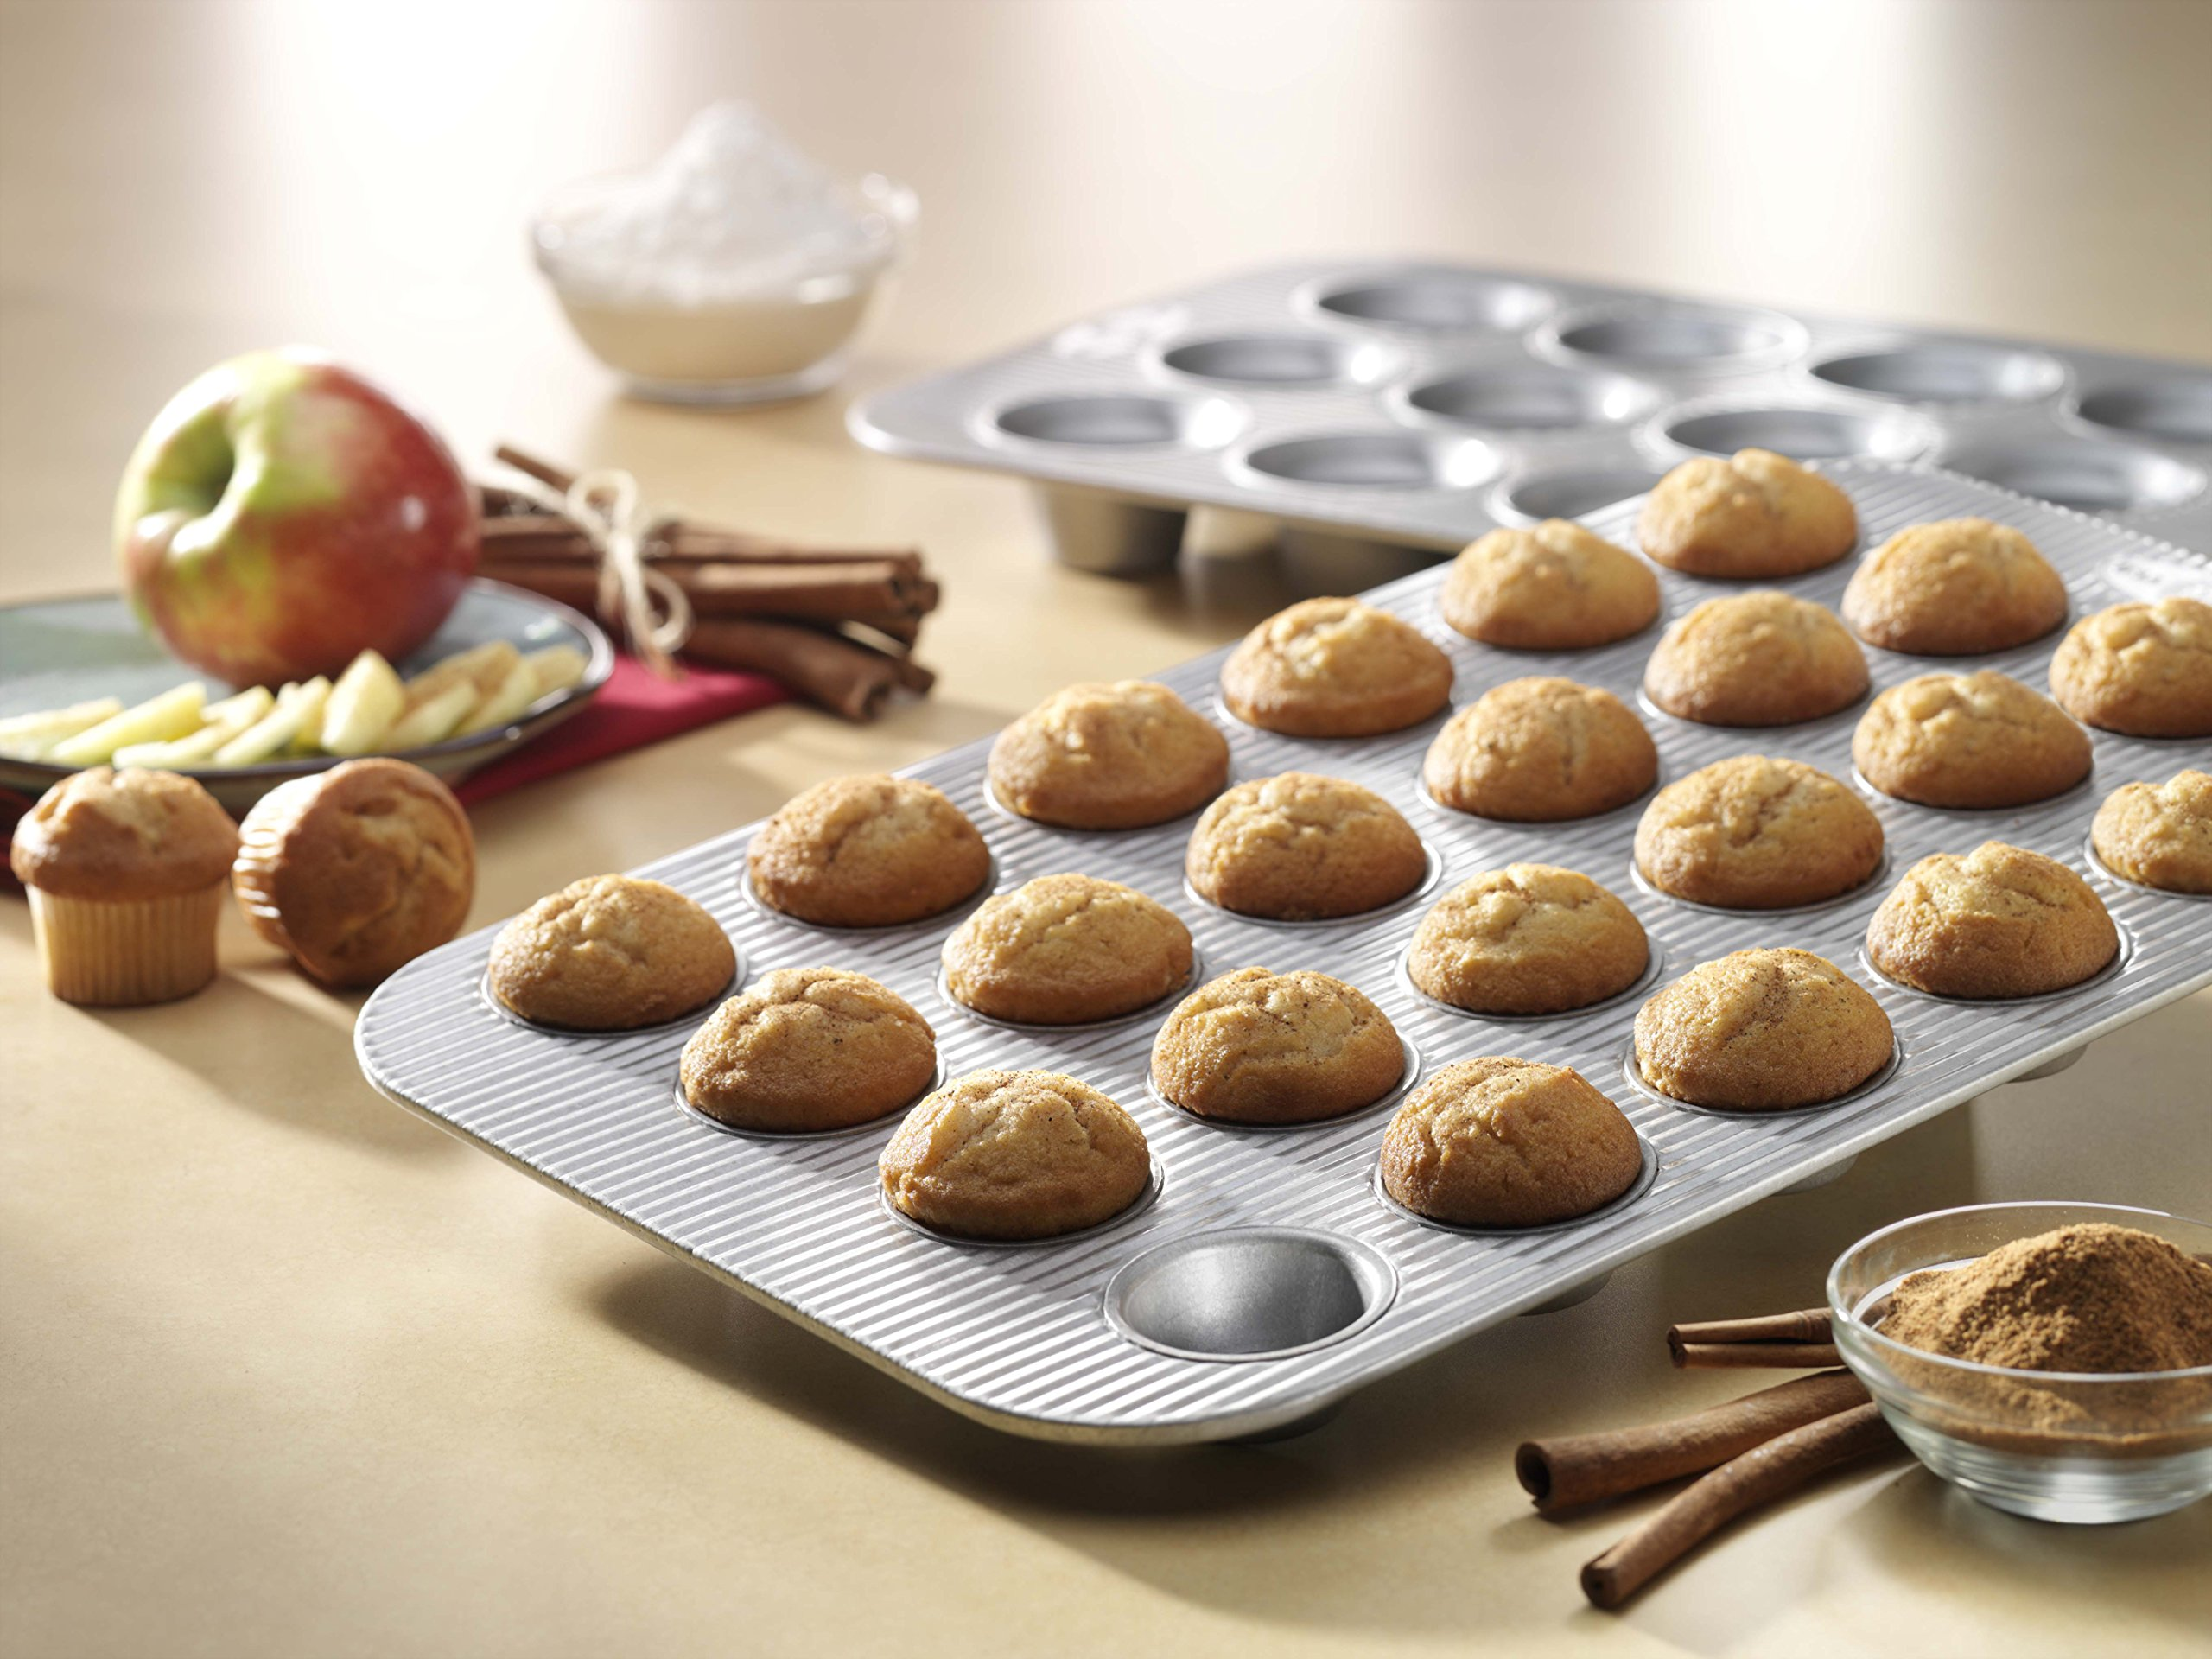 USA Pan Bakeware Mini Cupcake and Muffin Pan, 24 Well, Nonstick & Quick Release Coating, Made in the USA from Aluminized Steel 2 Mini Cupcake or Muffin Pan has 24 wells; commercial grade and heavy gauge aluminized steel with a lifetime warranty USA Pan baking pans feature Americoat which promotes quick release of baked-goods plus fast and easy clean up; wash with hot water, mild soap and gentle scrub brush or sponge Nonstick Americoat coating - a patented silicone coating which is PTFE, PFOA and BPA free - provides quick and easy release of all baked-goods and minimal easy clean up